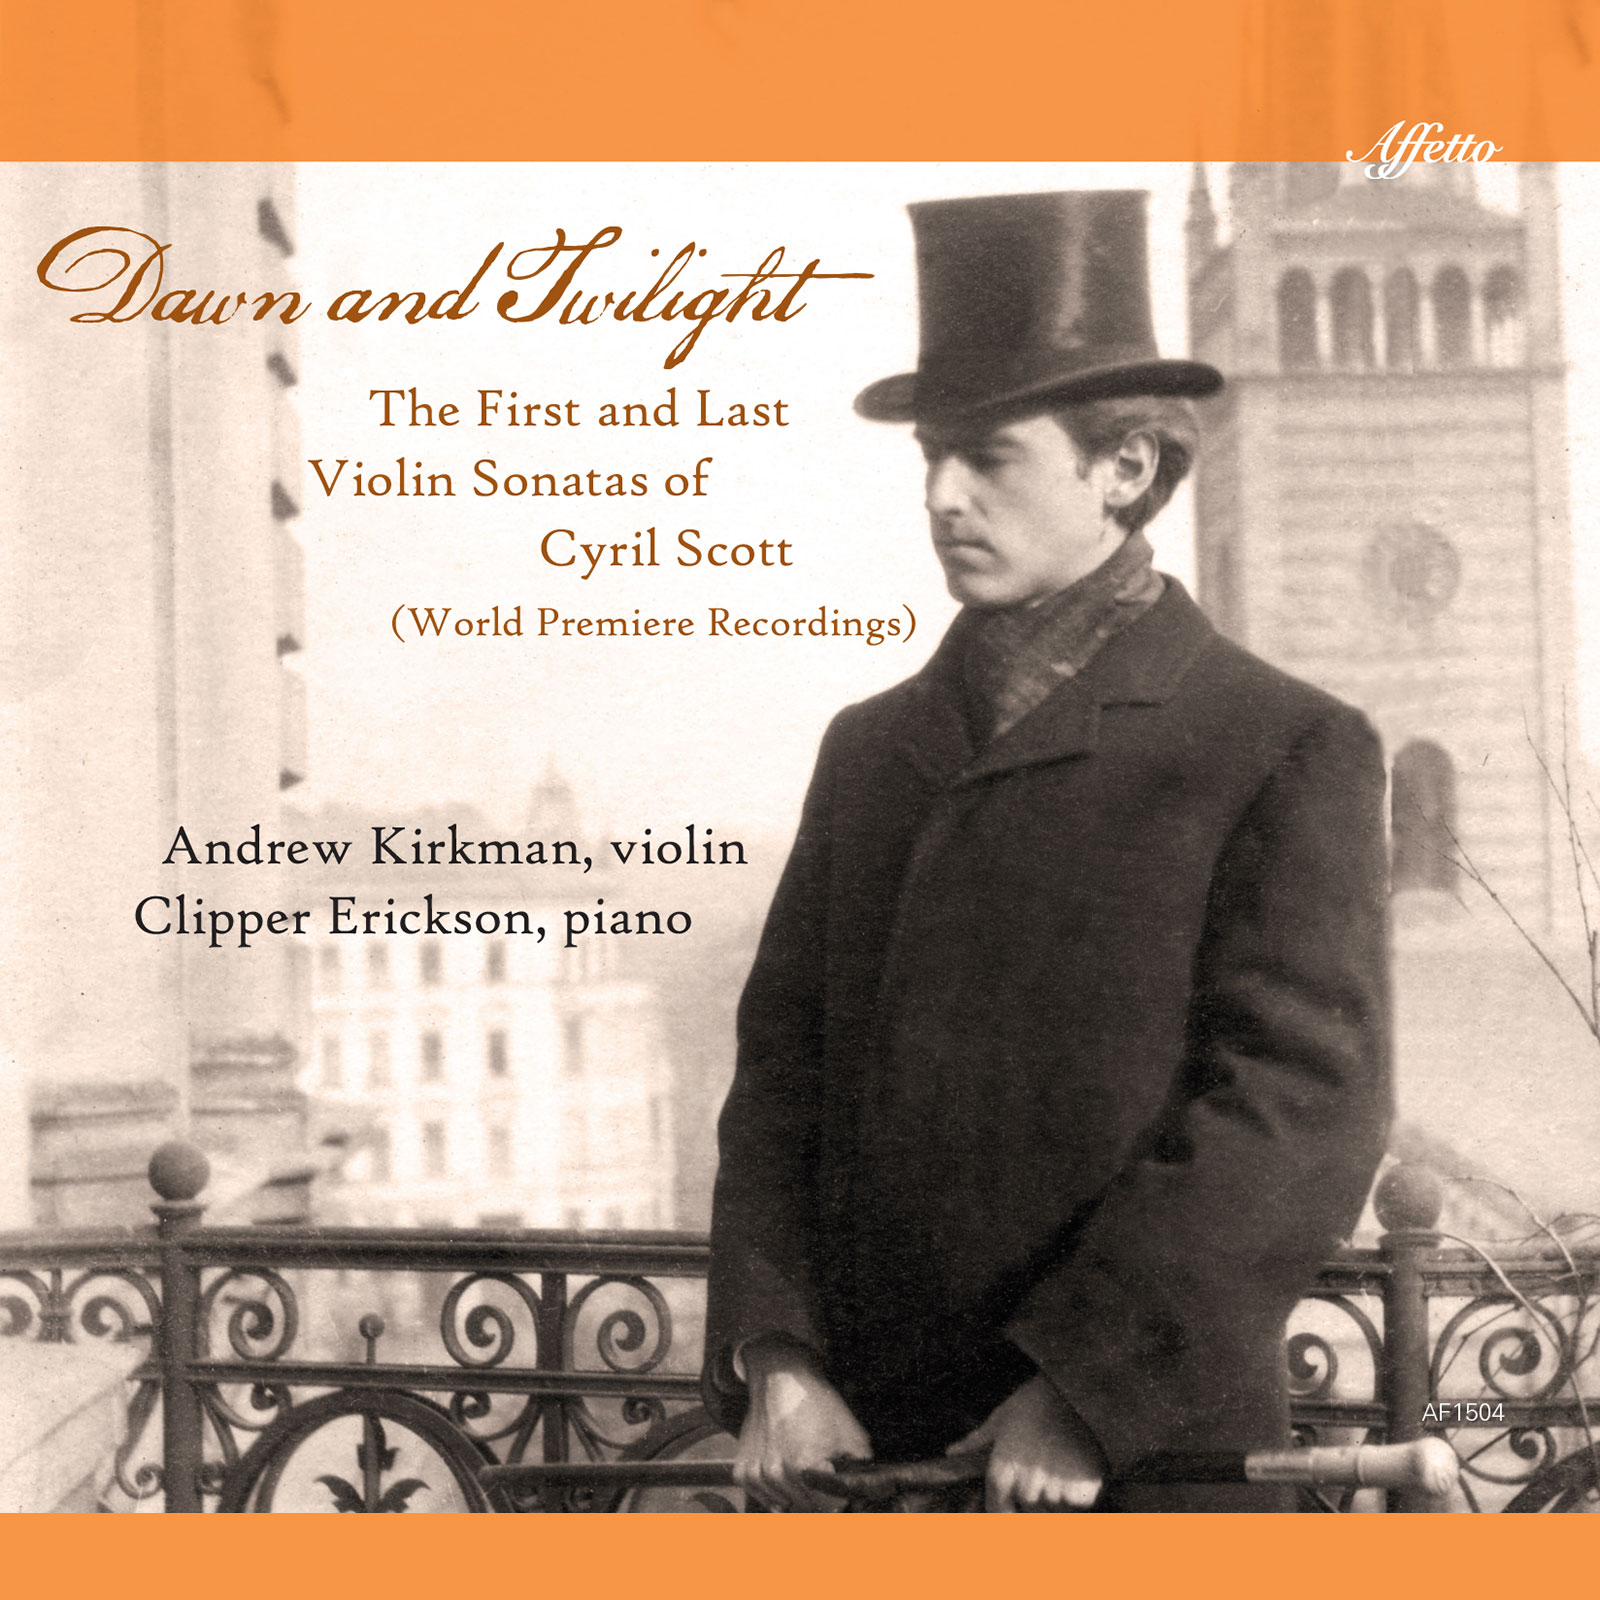 Dawn and Twilight: The First and Last Violin Sonatas of Cyril Scott (World Premiere Recordings)